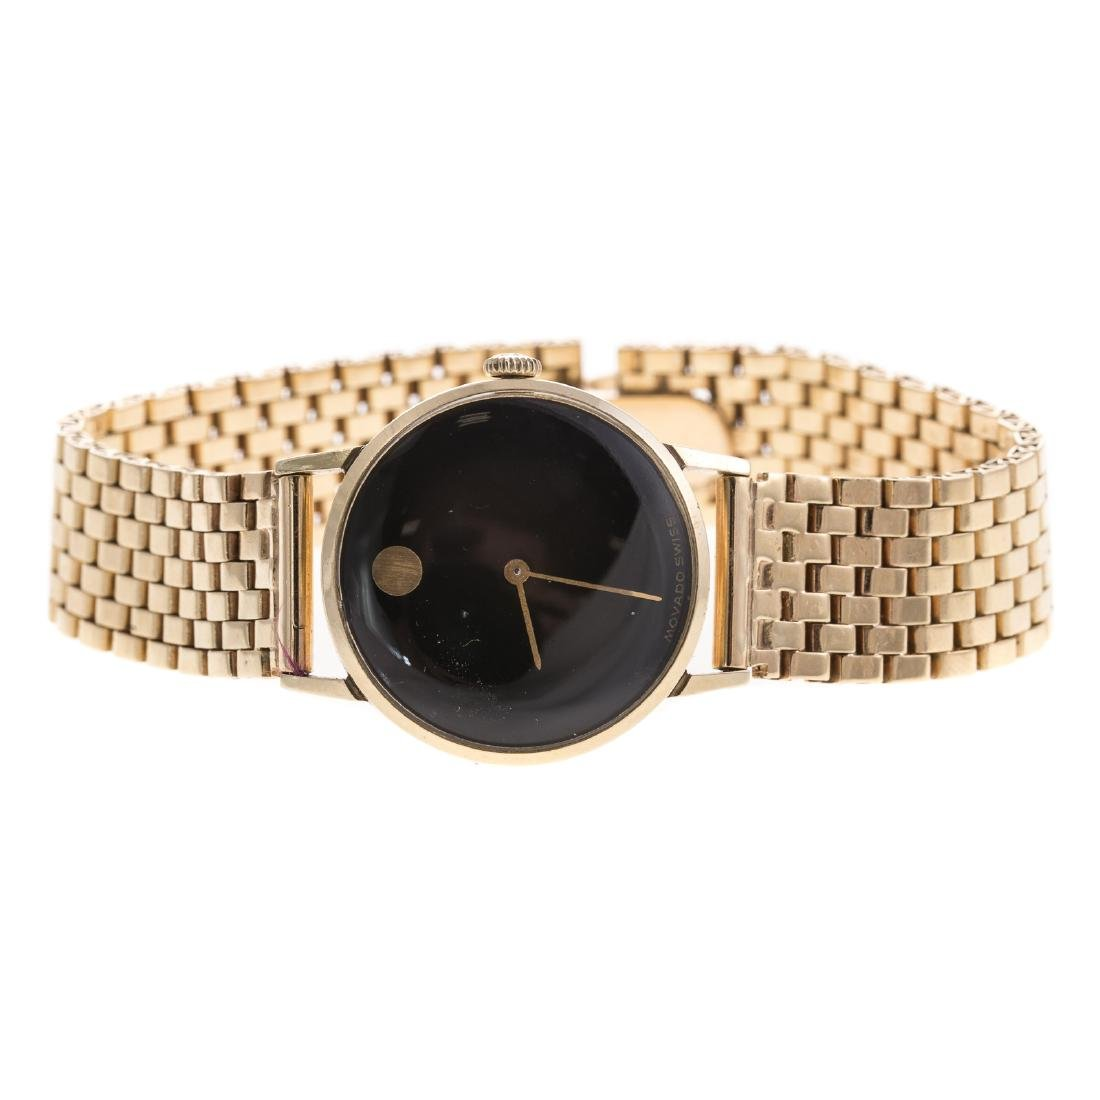 A Lady's Movado Watch in 14K Gold - 2